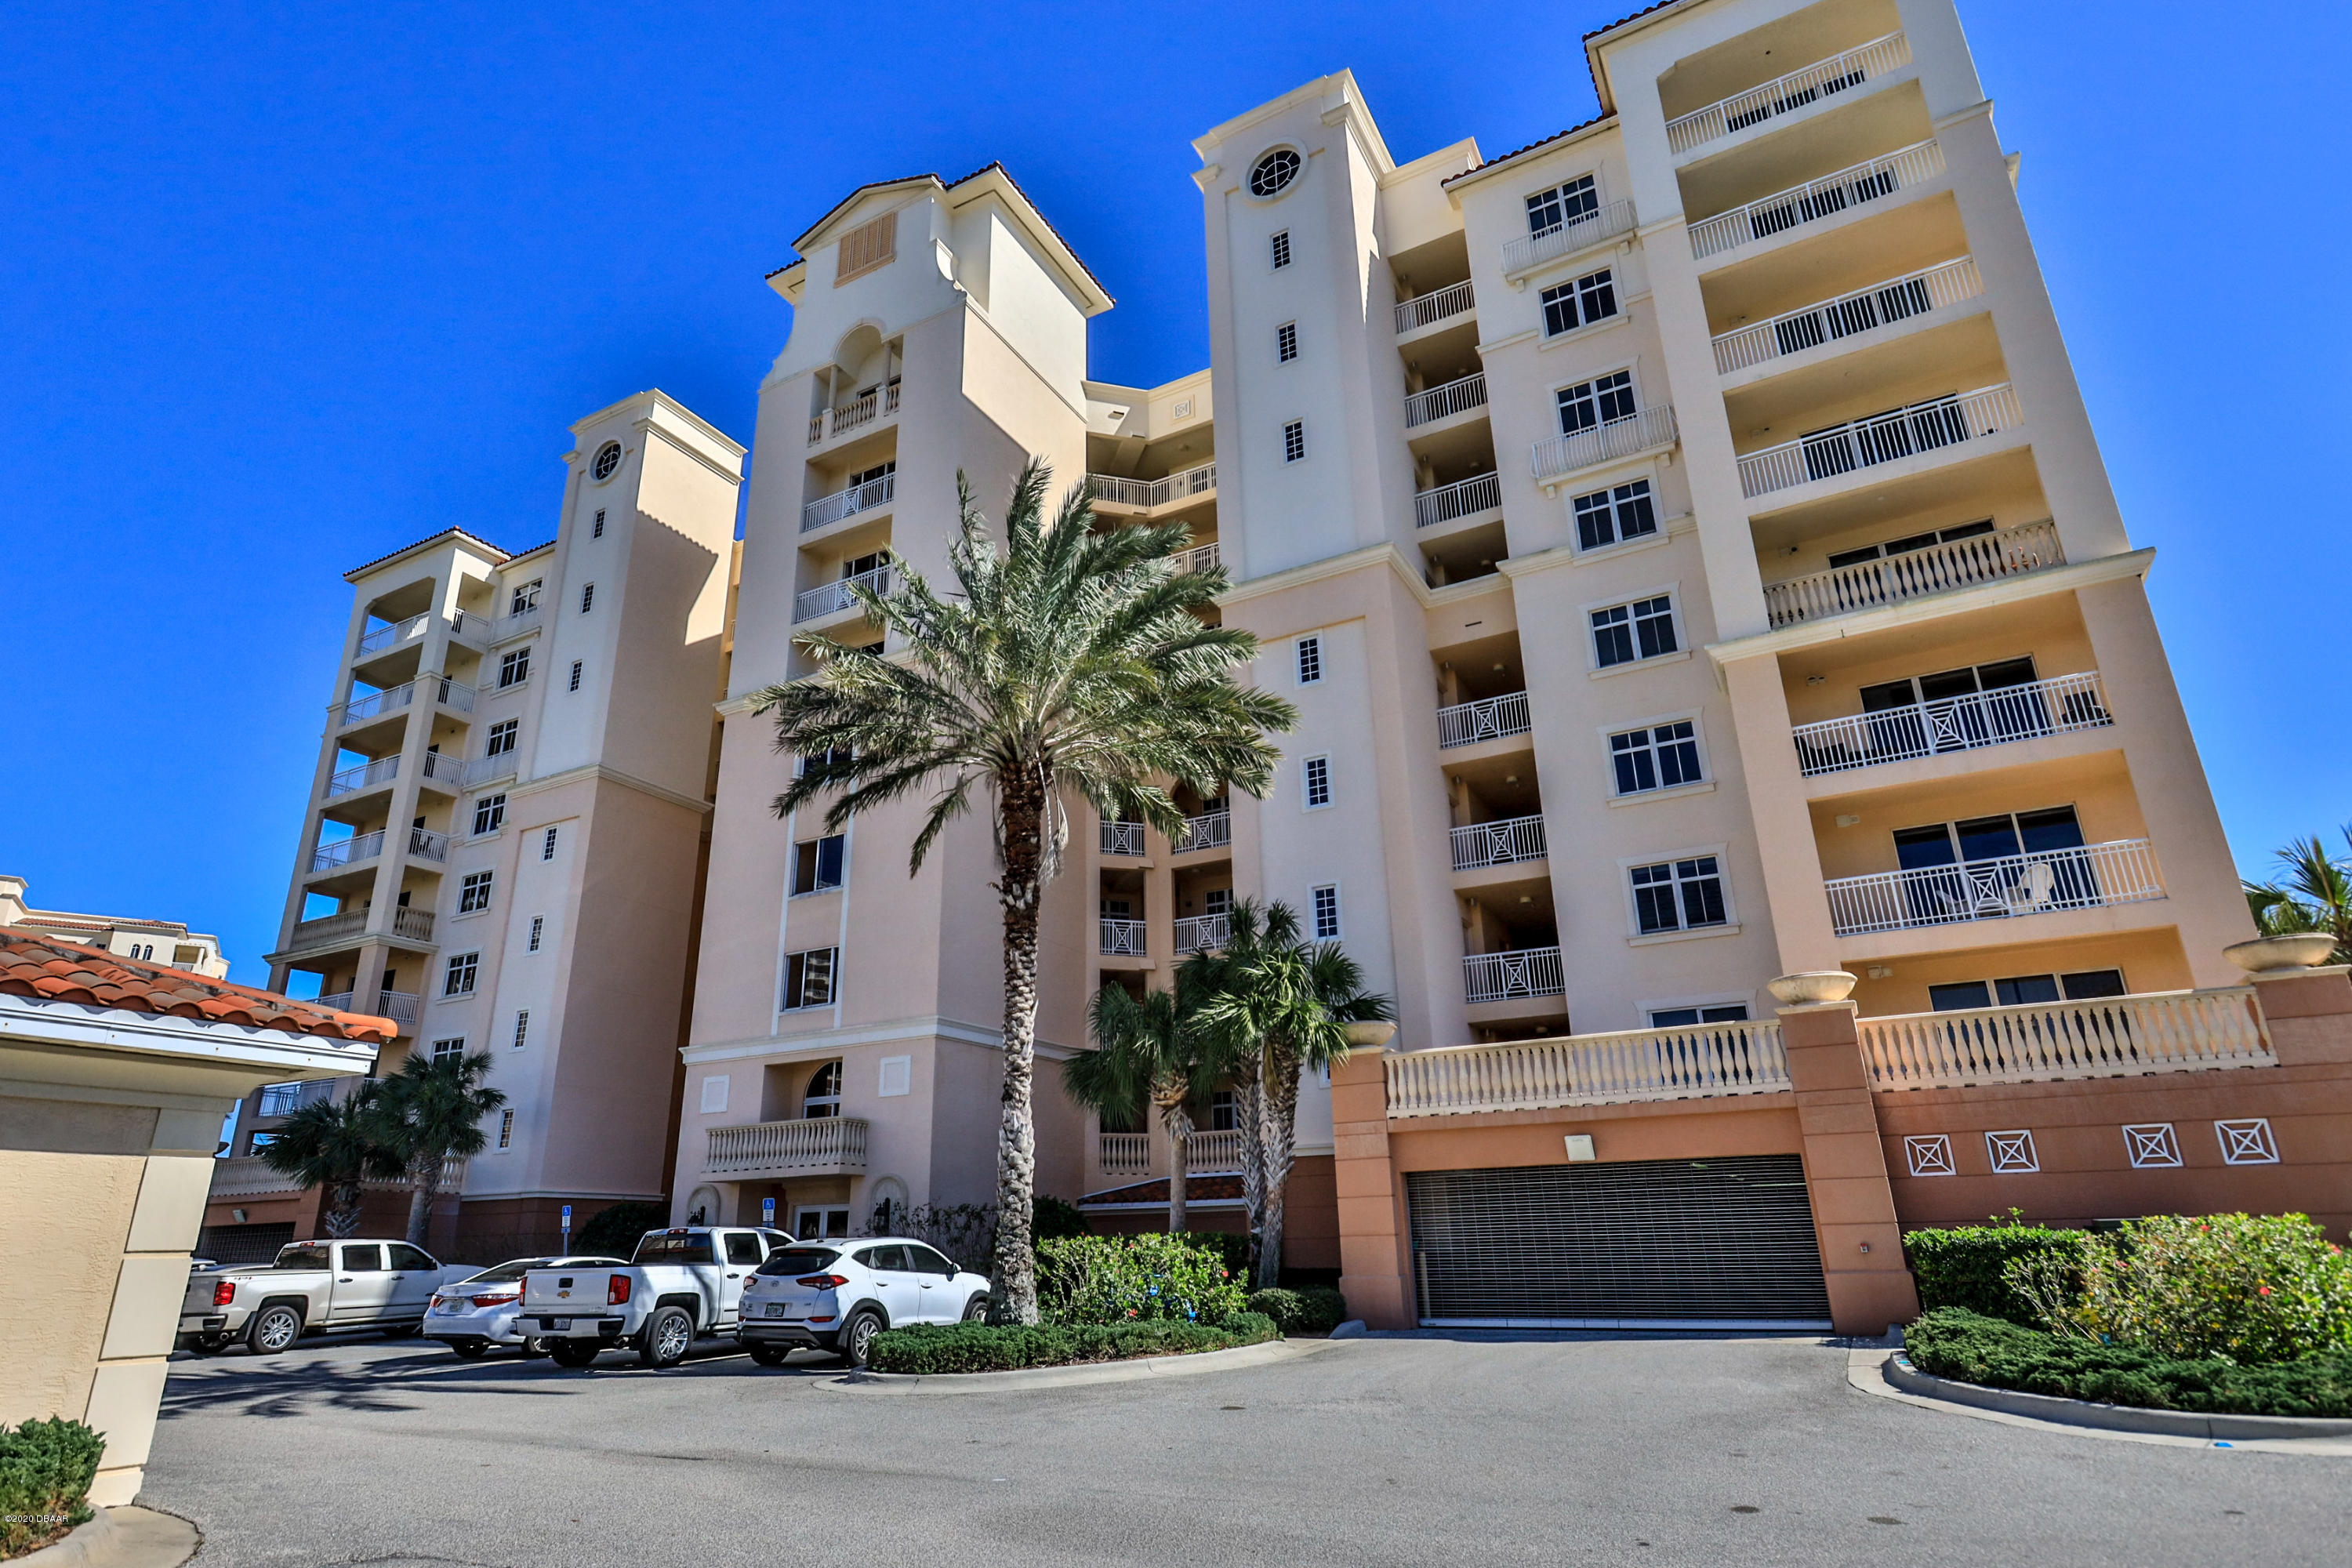 Photo of 250 Minorca Beach Way #301, New Smyrna Beach, FL 32169